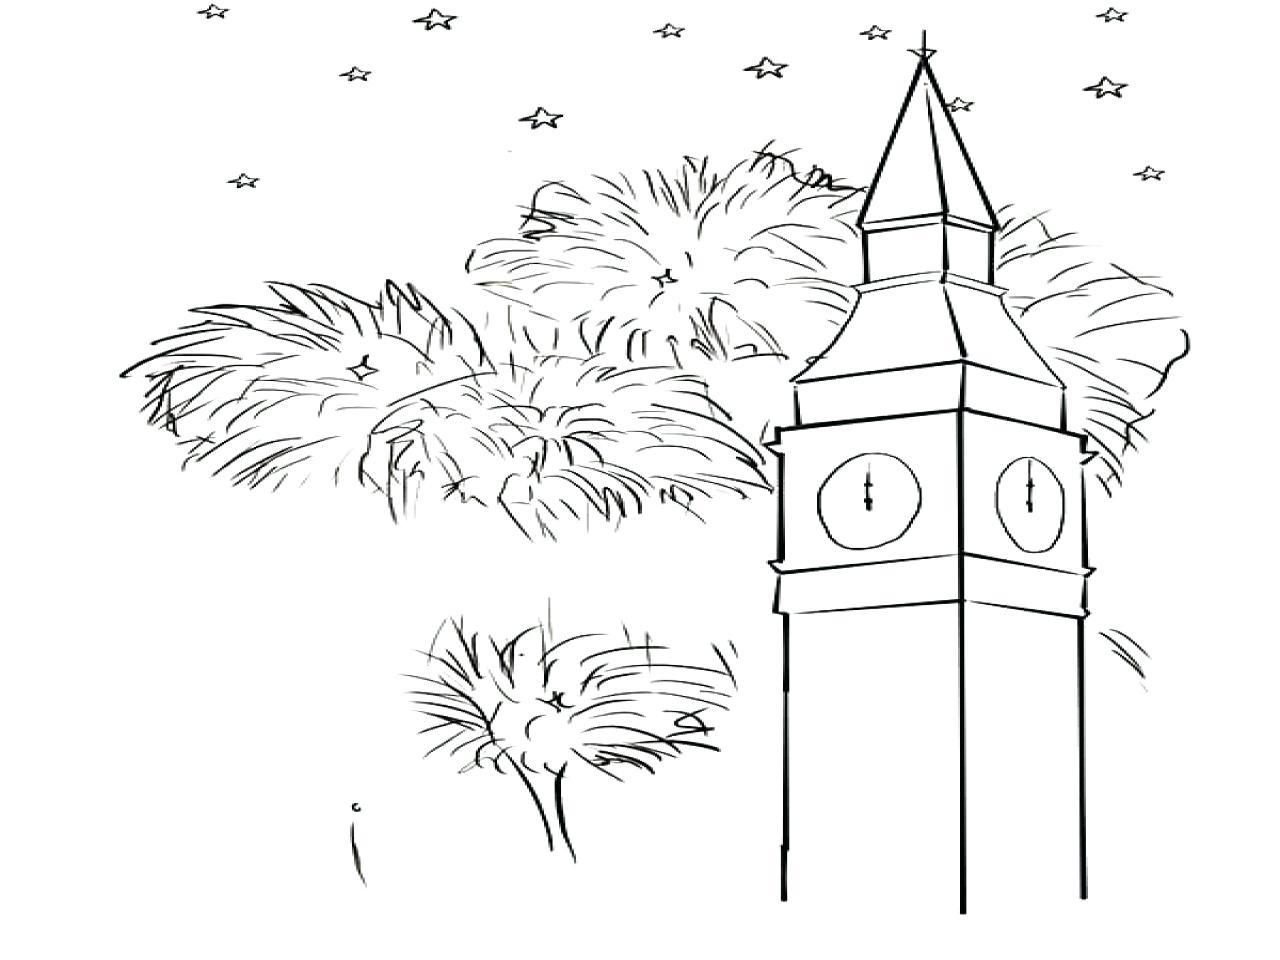 1280x960 Big Ben Clock Tower Architechture Coloring Pages Thanksgiving Food